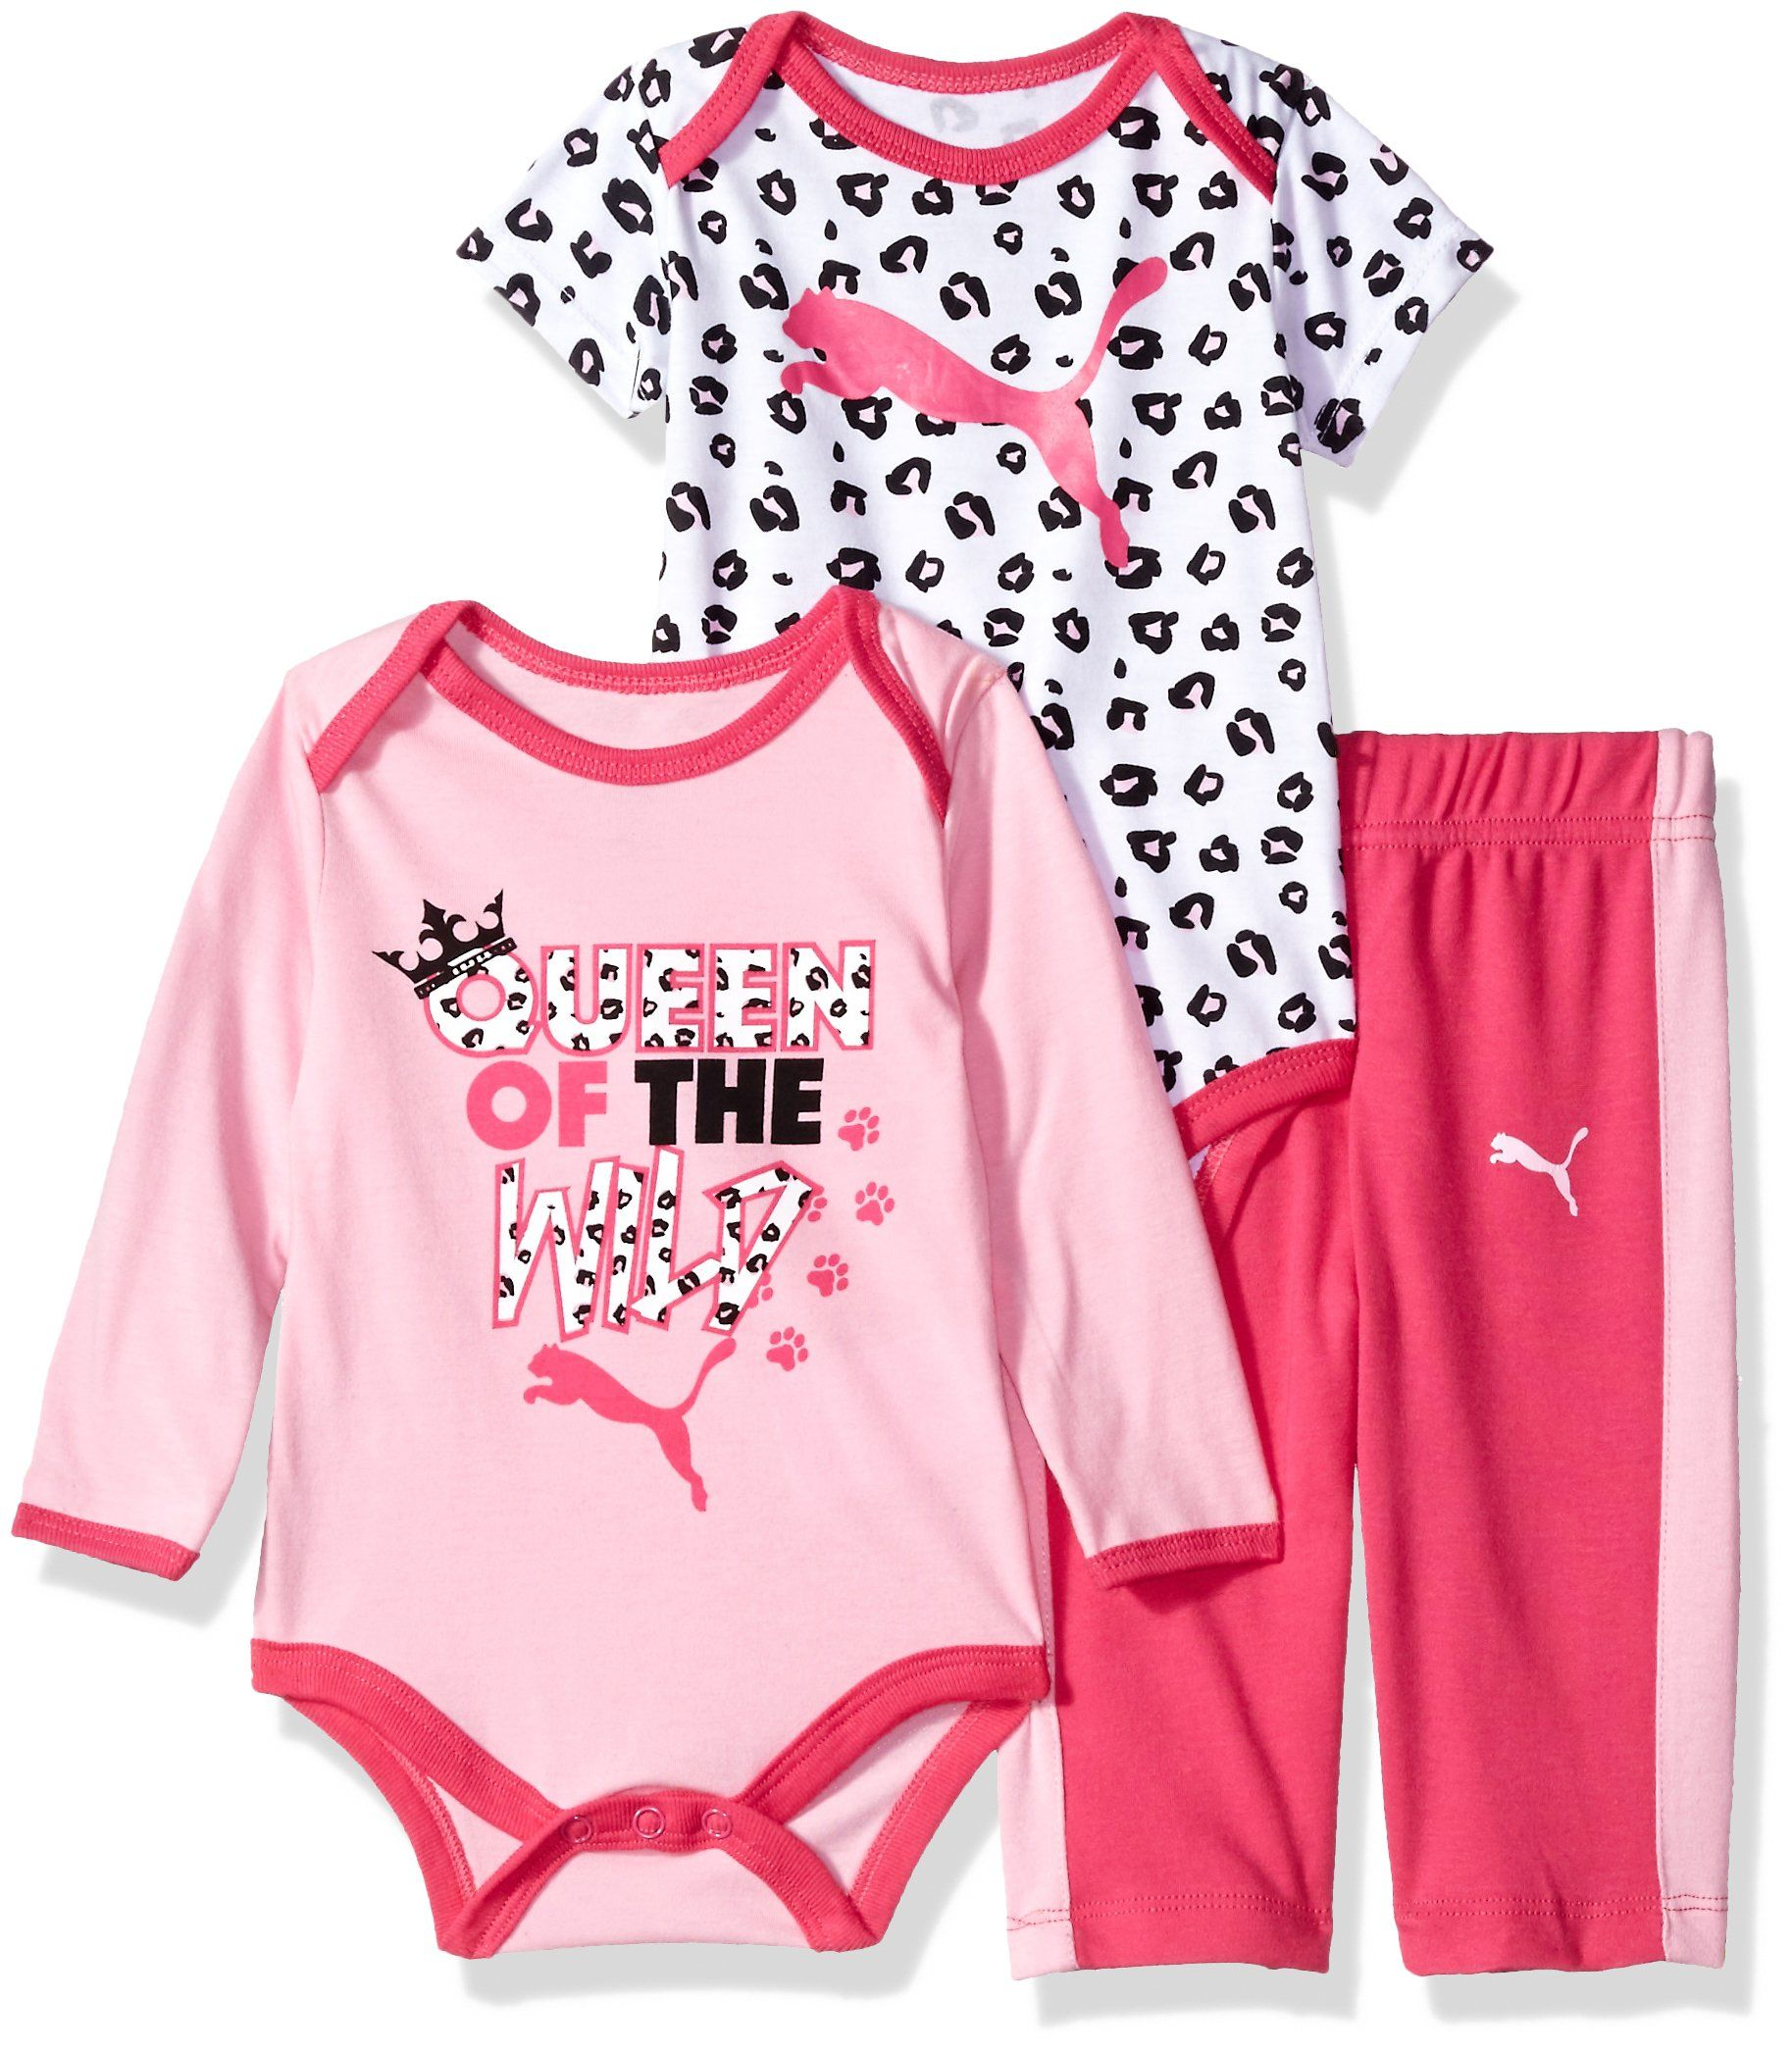 Baby Girl 6-9 Months Set Clothing, Shoes & Accessories